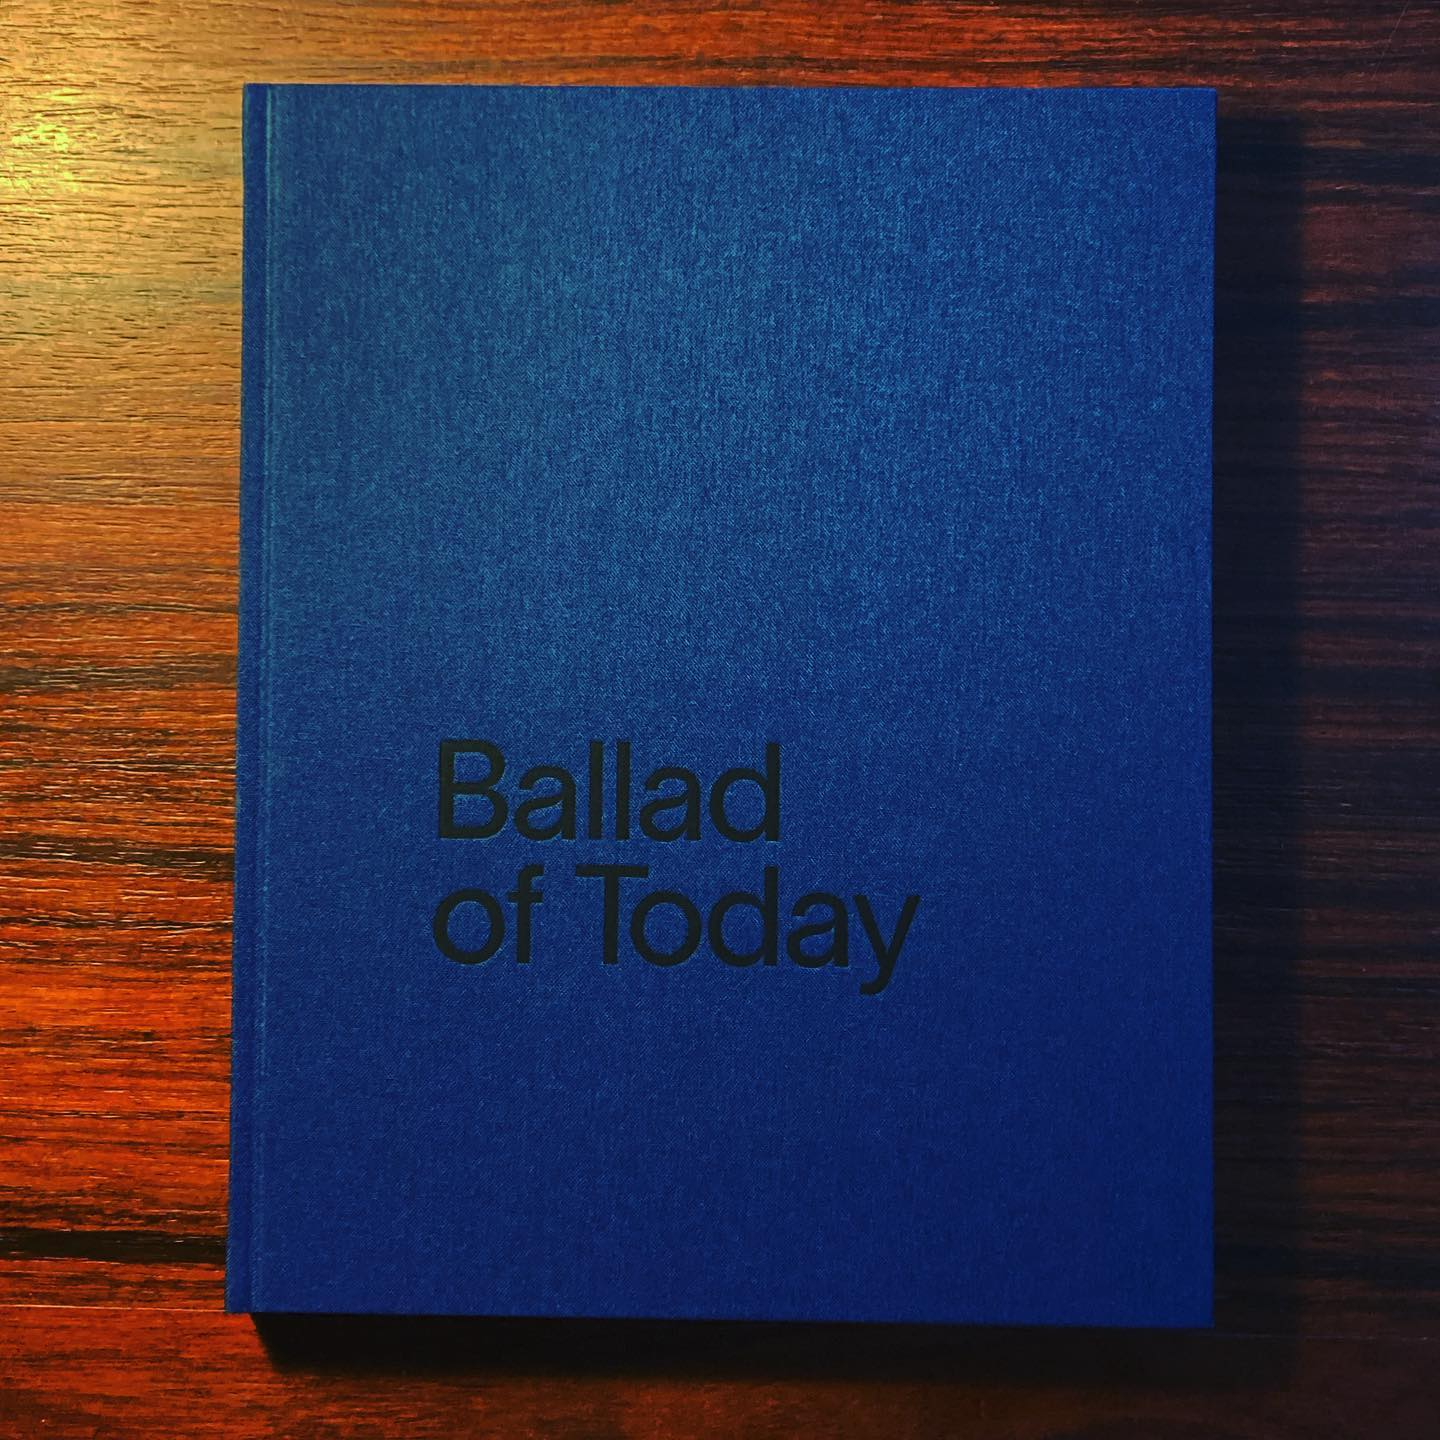 BALLAD OF TODAY • ANDRÉ CEPEDA